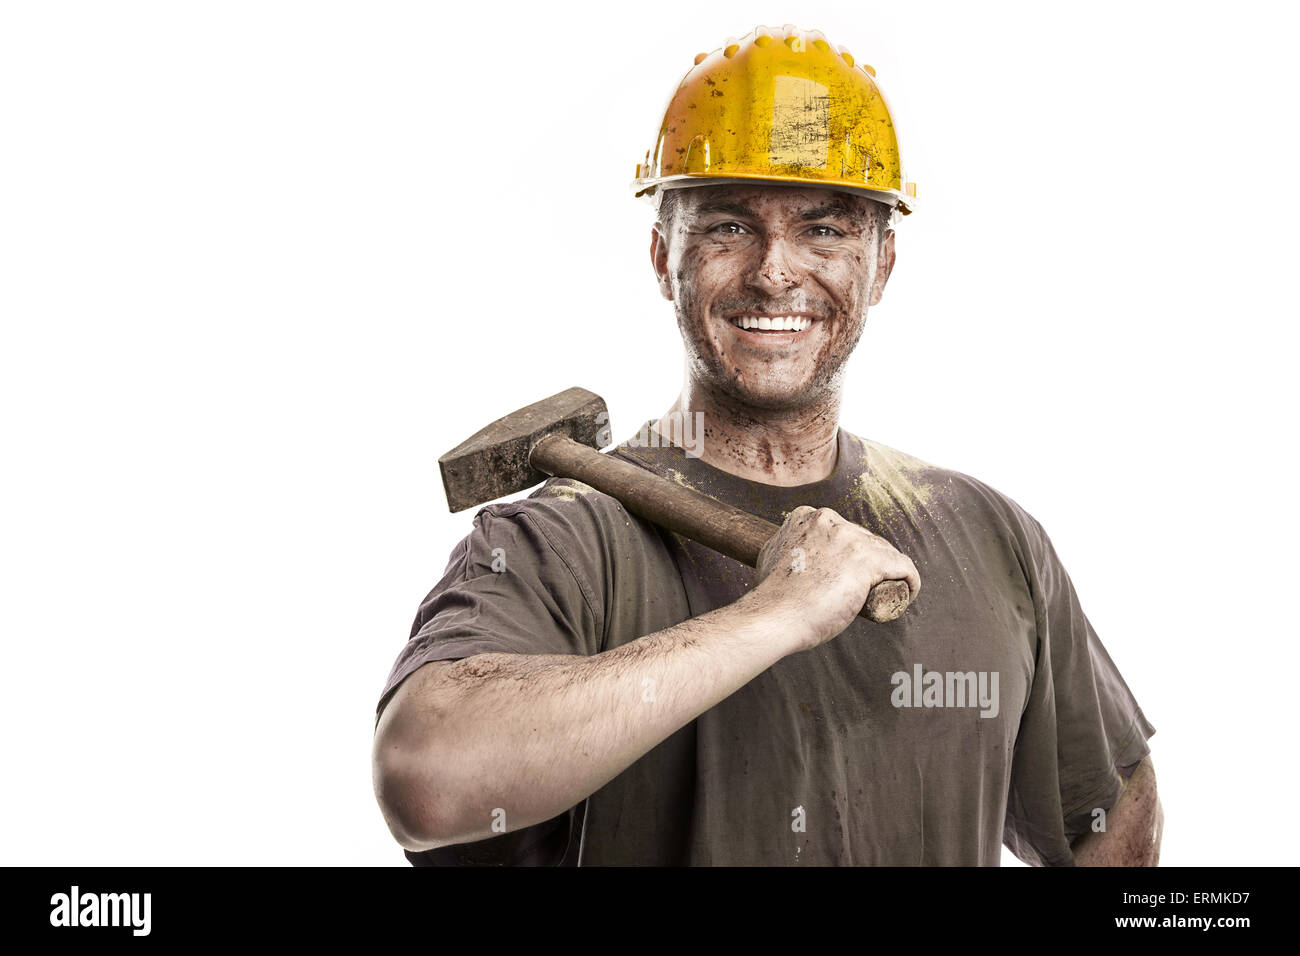 Young dirty Worker Man With Hard Hat helmet  holding a hammer isolated on White Background - Stock Image